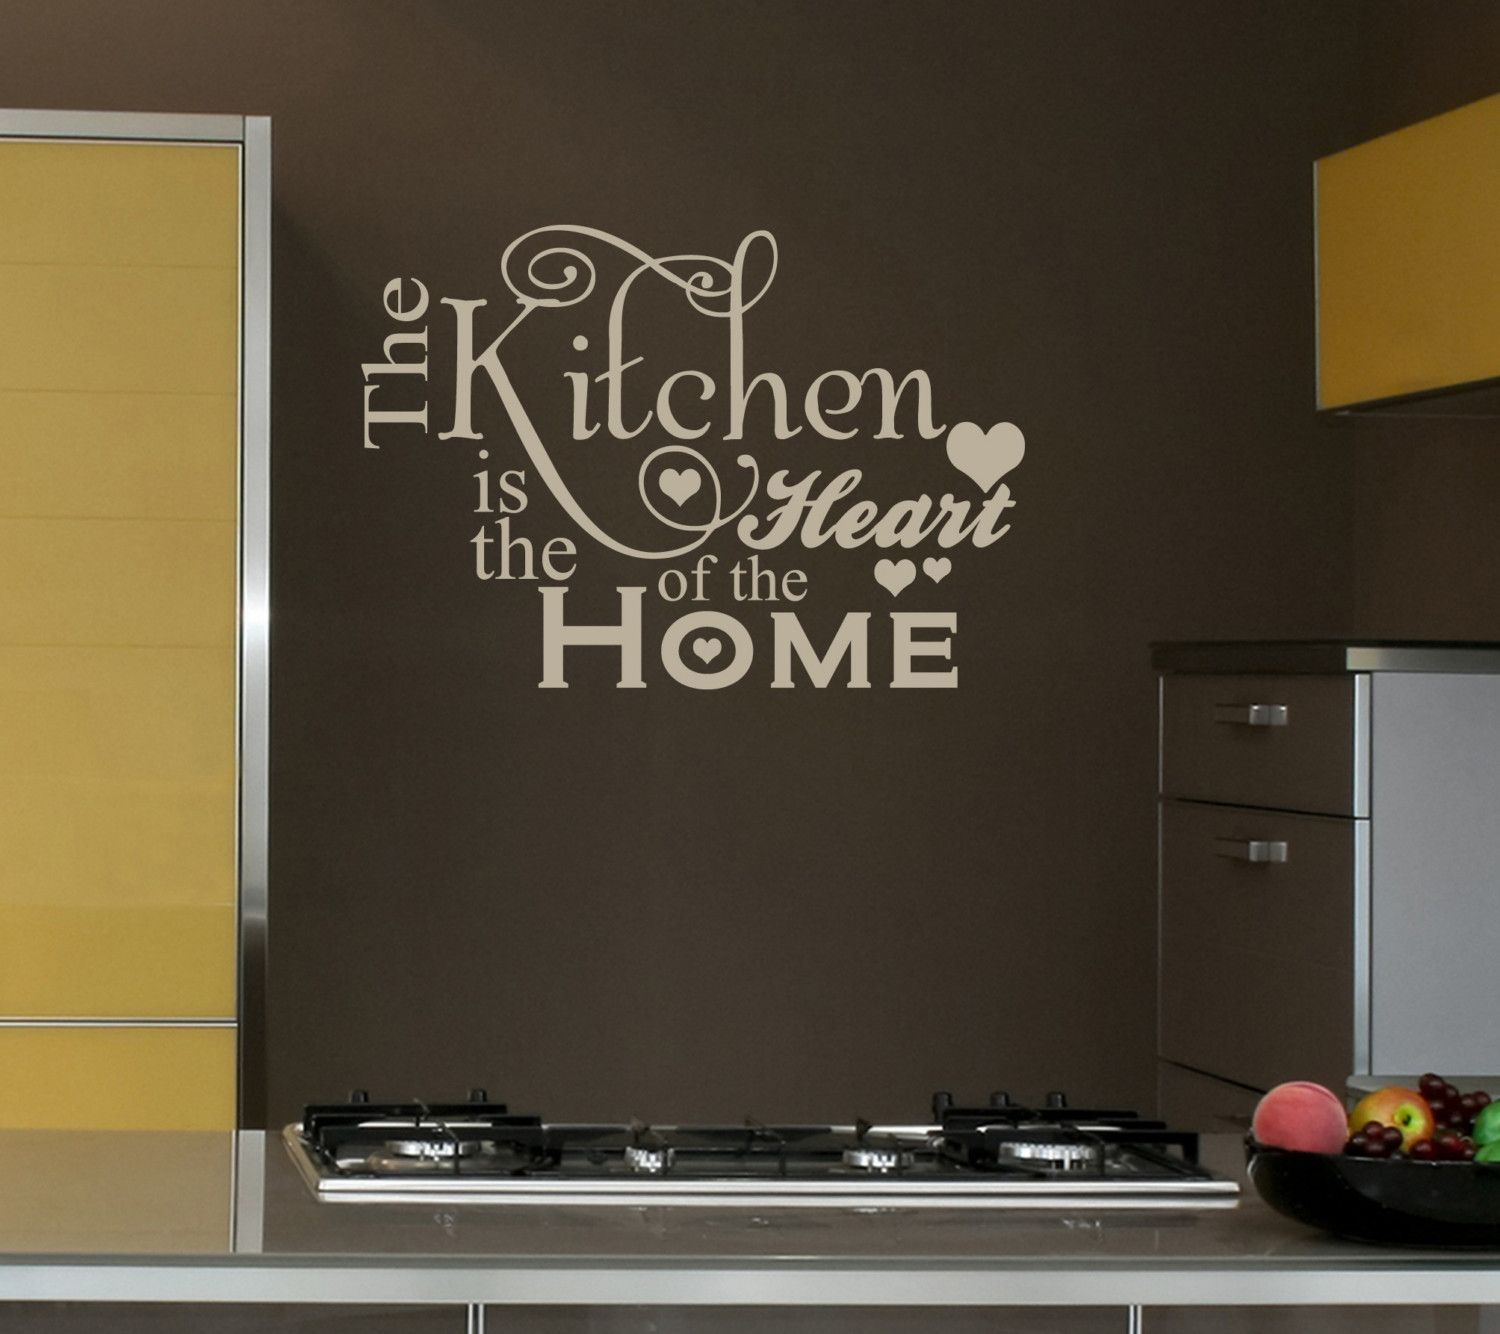 25x16 Kitchen Heart Home Decal Shabby Chic Decor Vinyl Wall Lettering Words Quotes Decals Art Custom Willow Creek Signs Vinyl Wall Lettering Letter Wall Home Decor Quotes